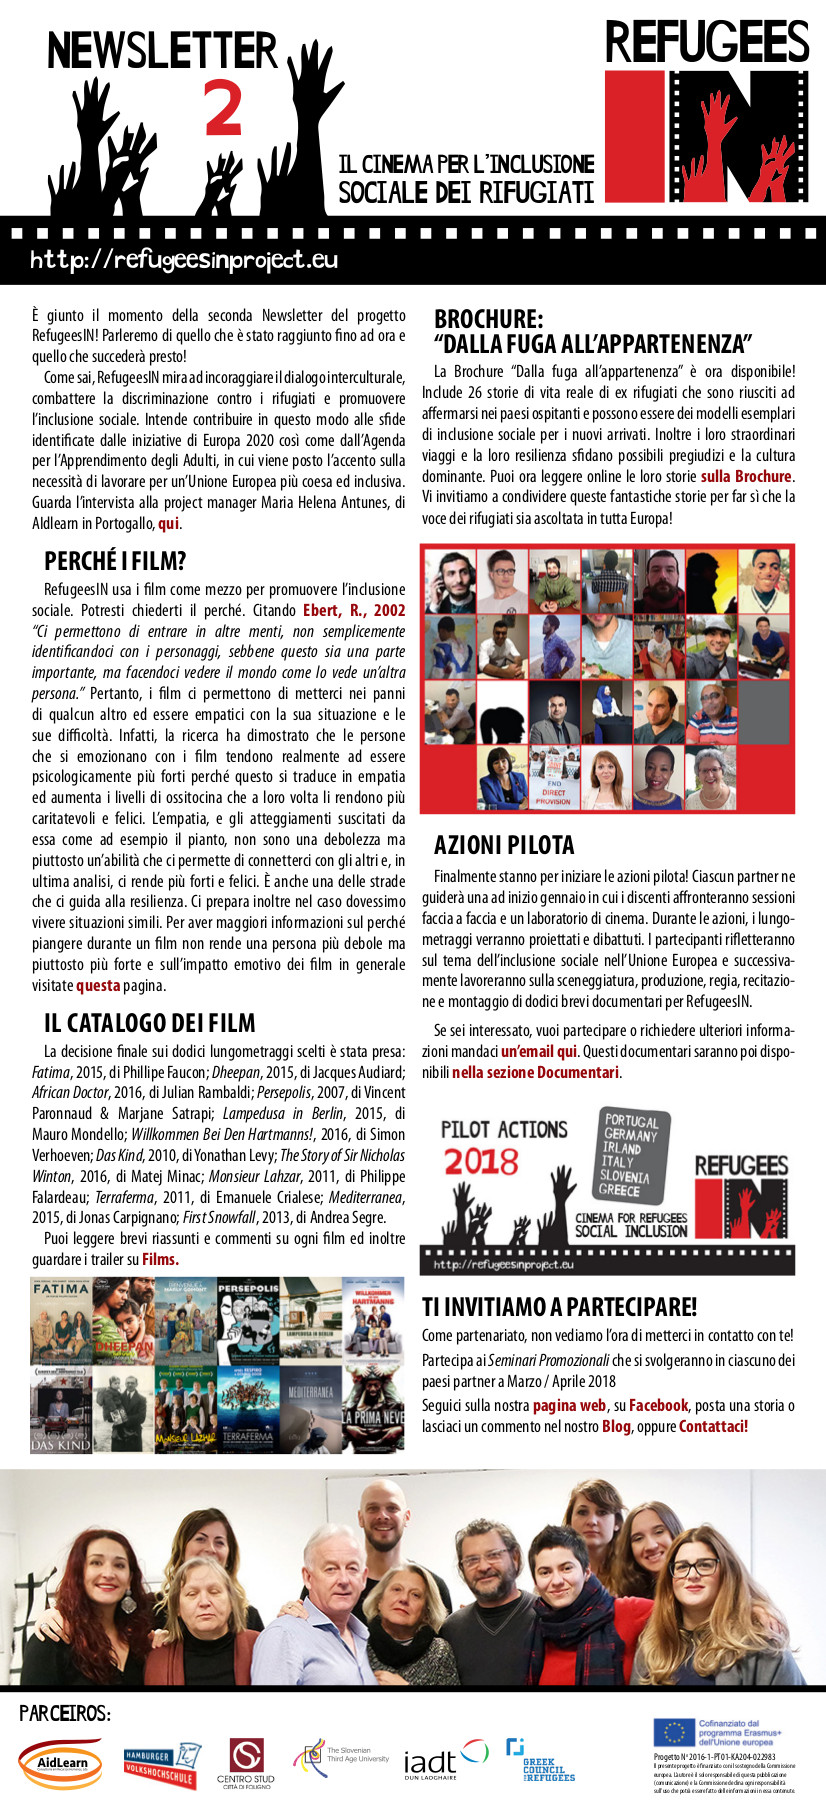 refugeesin newsletter2